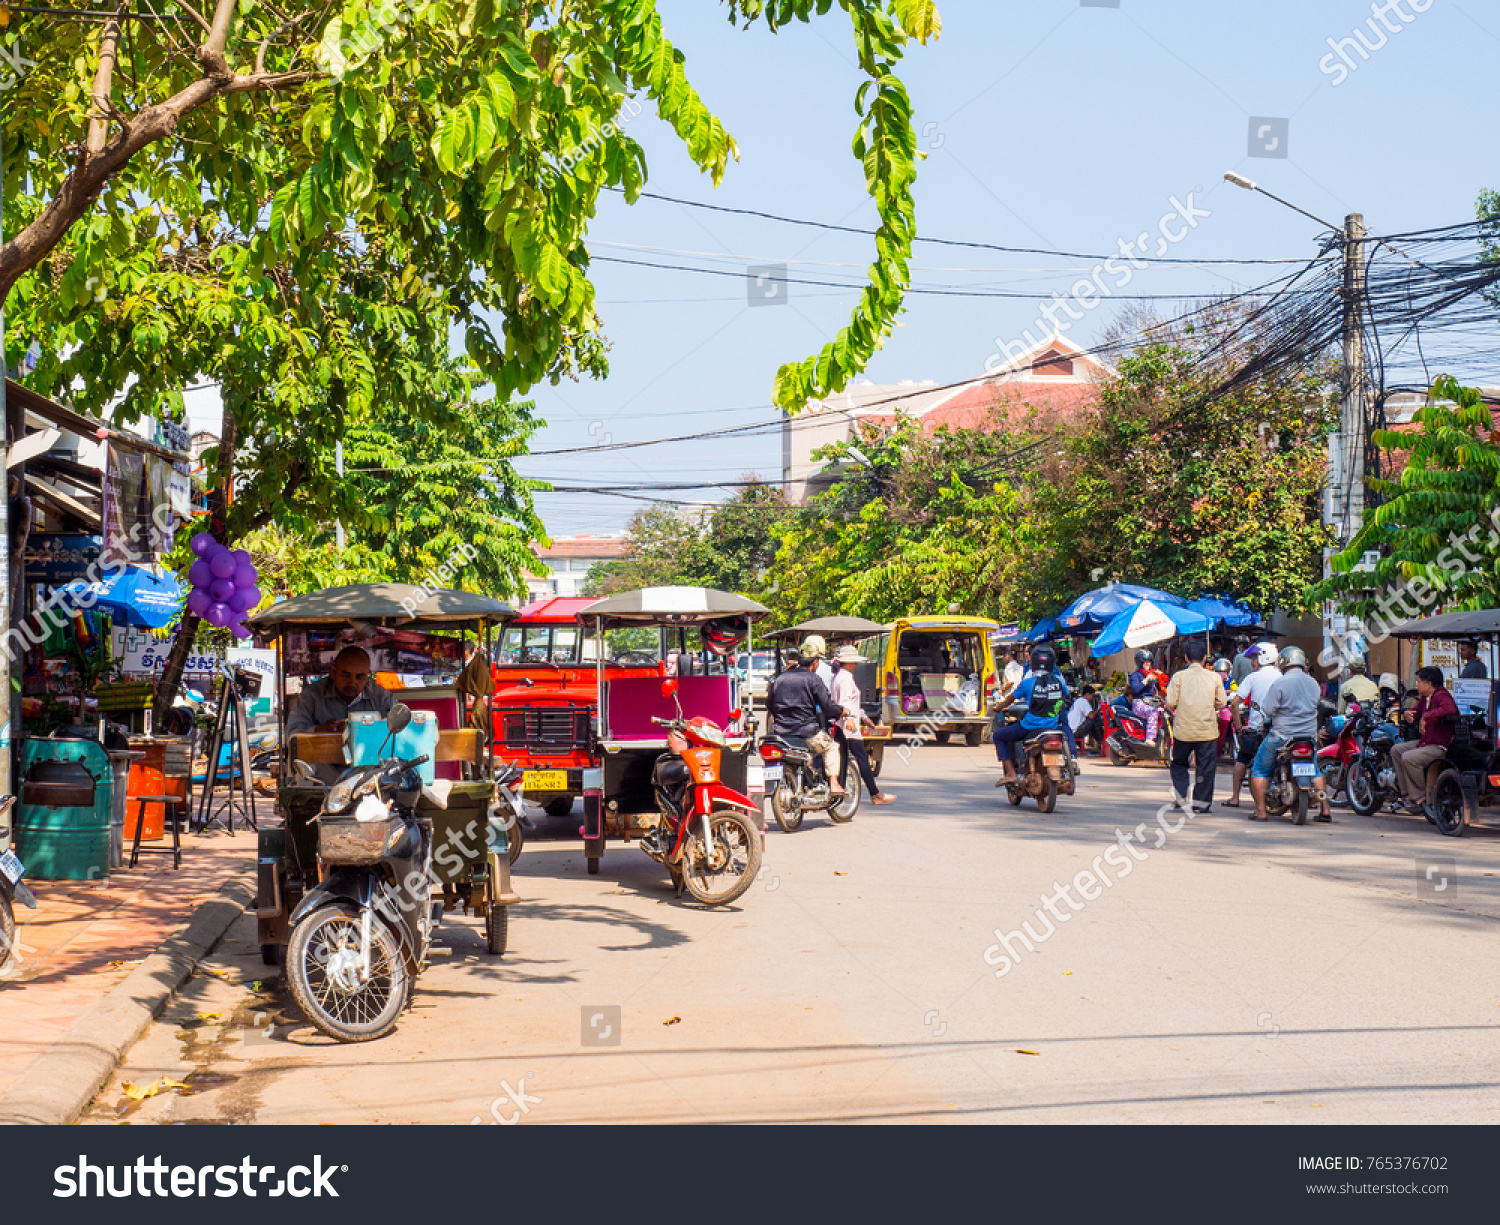 siem reap cambodia october 5 2017 tuk stock photo (edit now